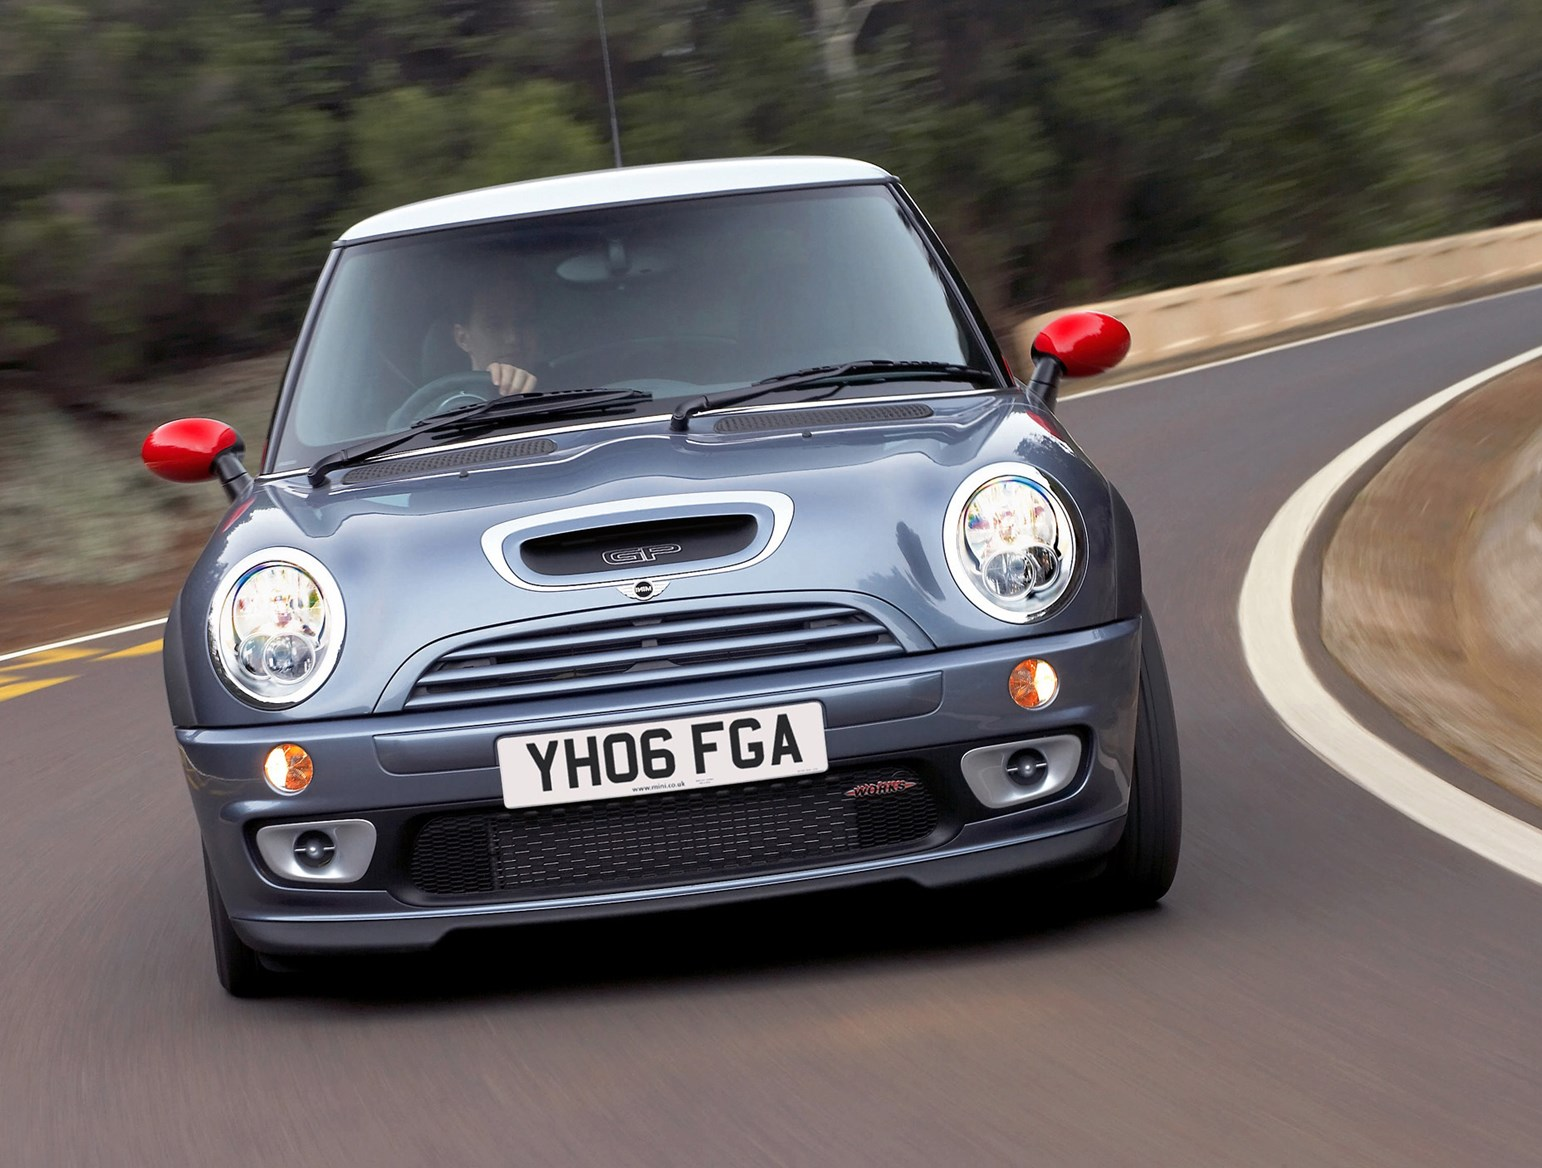 View All Images Of The MINI Cooper S 02 06